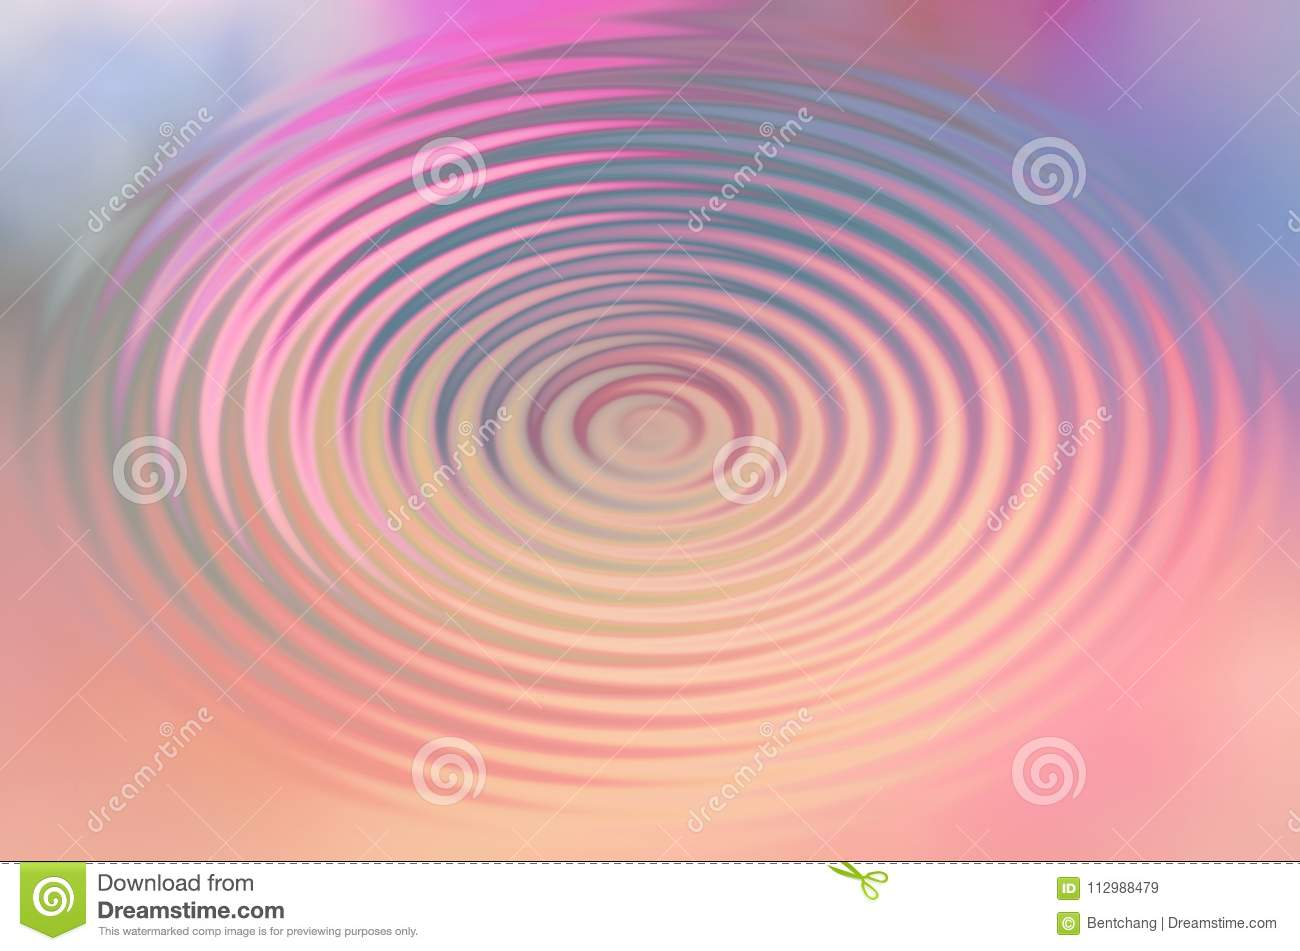 Motion blur, wallpaper or texture background. Ripple, dreamy, bubble & artistic.